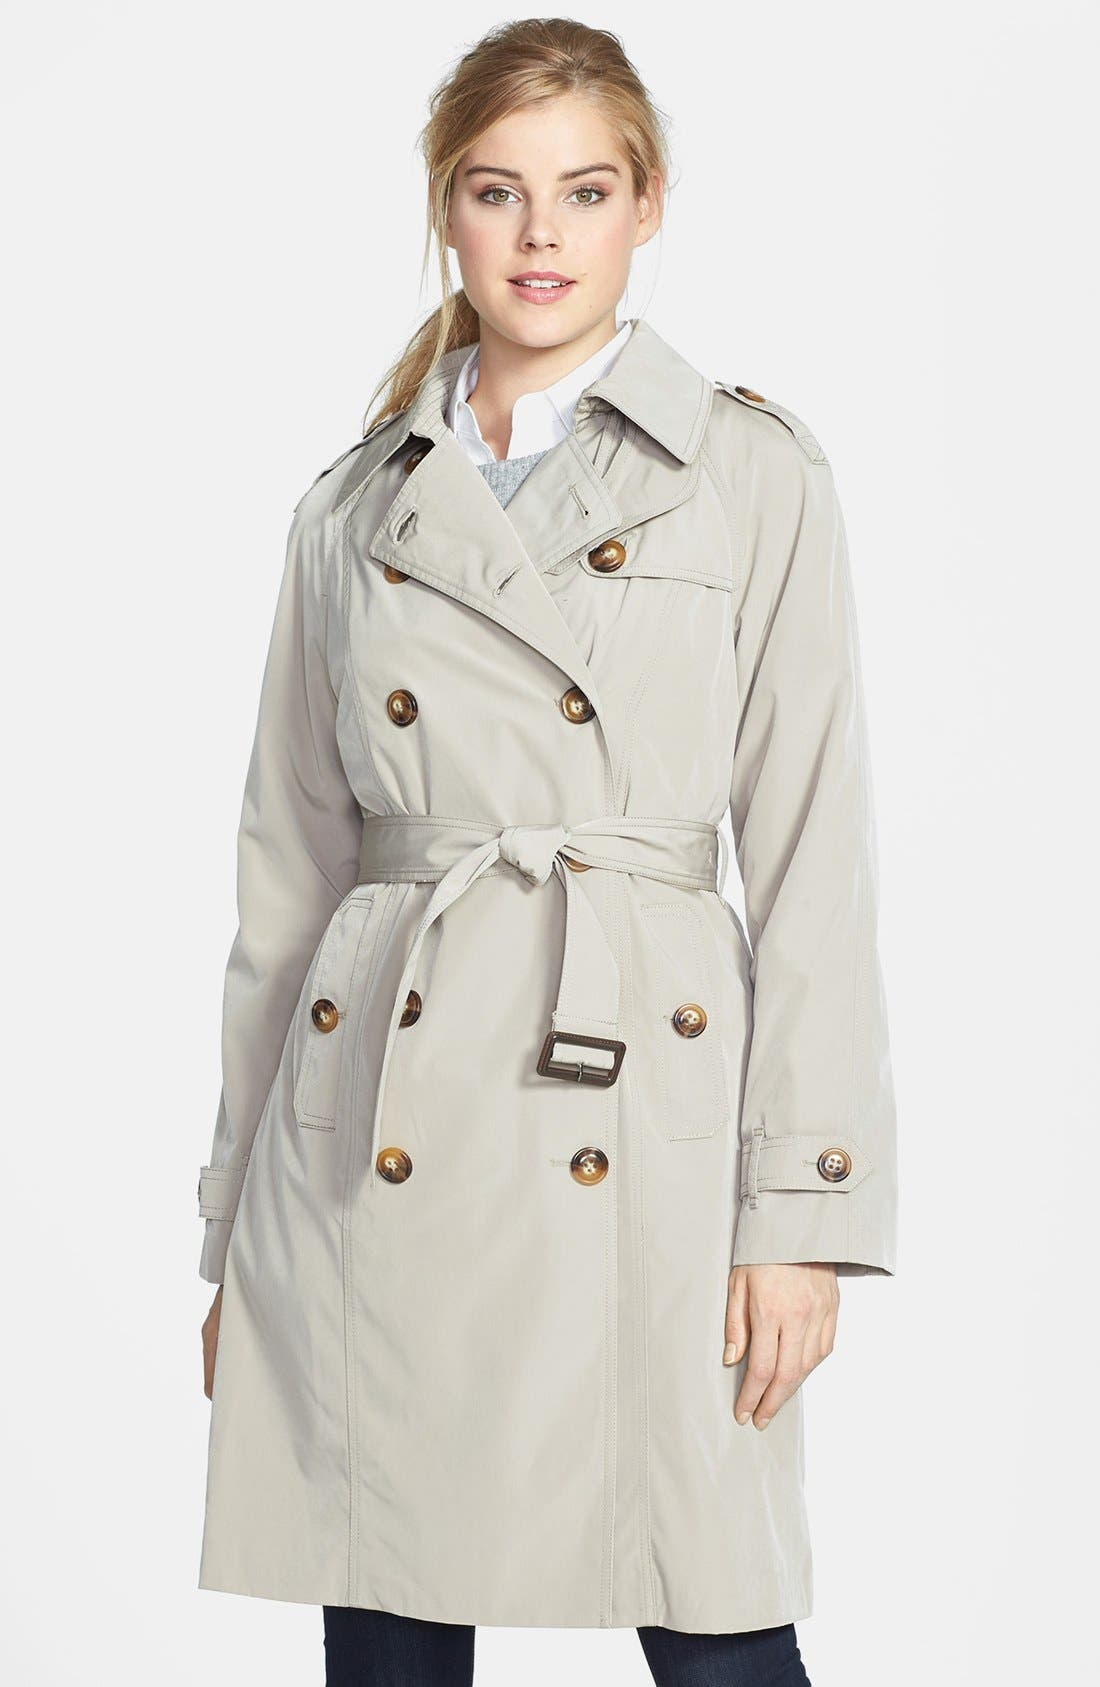 Alternate Image 1 Selected - London Fog Double Breasted Trench Coat with Detachable Liner